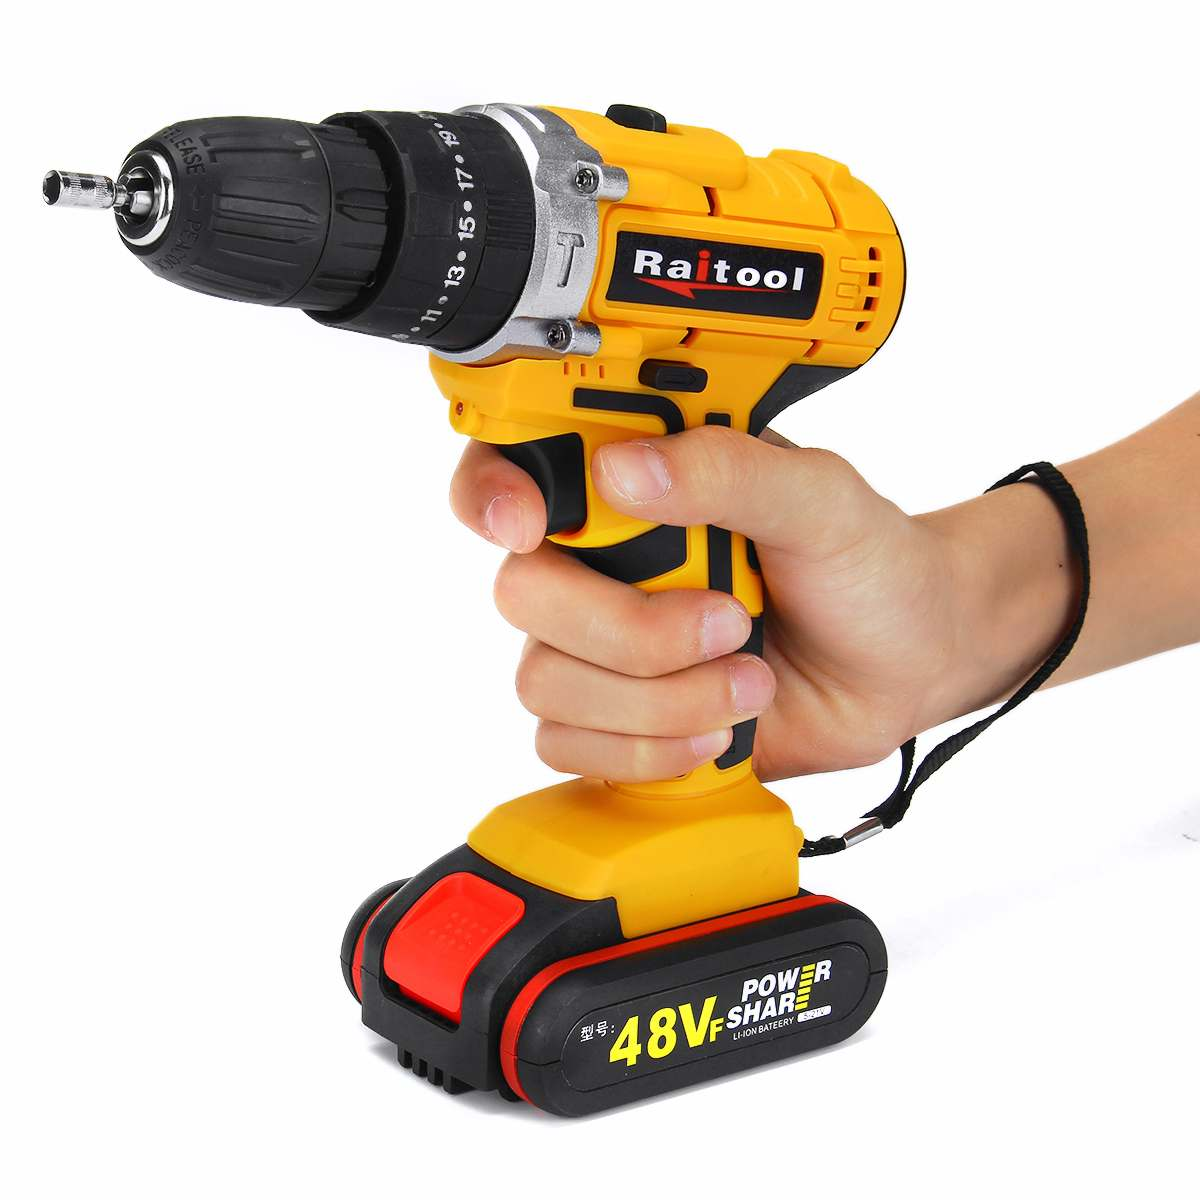 3 In 1 48VF 2 Speed Cordless Drill Electric Screwdriver Wireless Power Driver DC Lithium-Ion Battery With LED Light Raitool